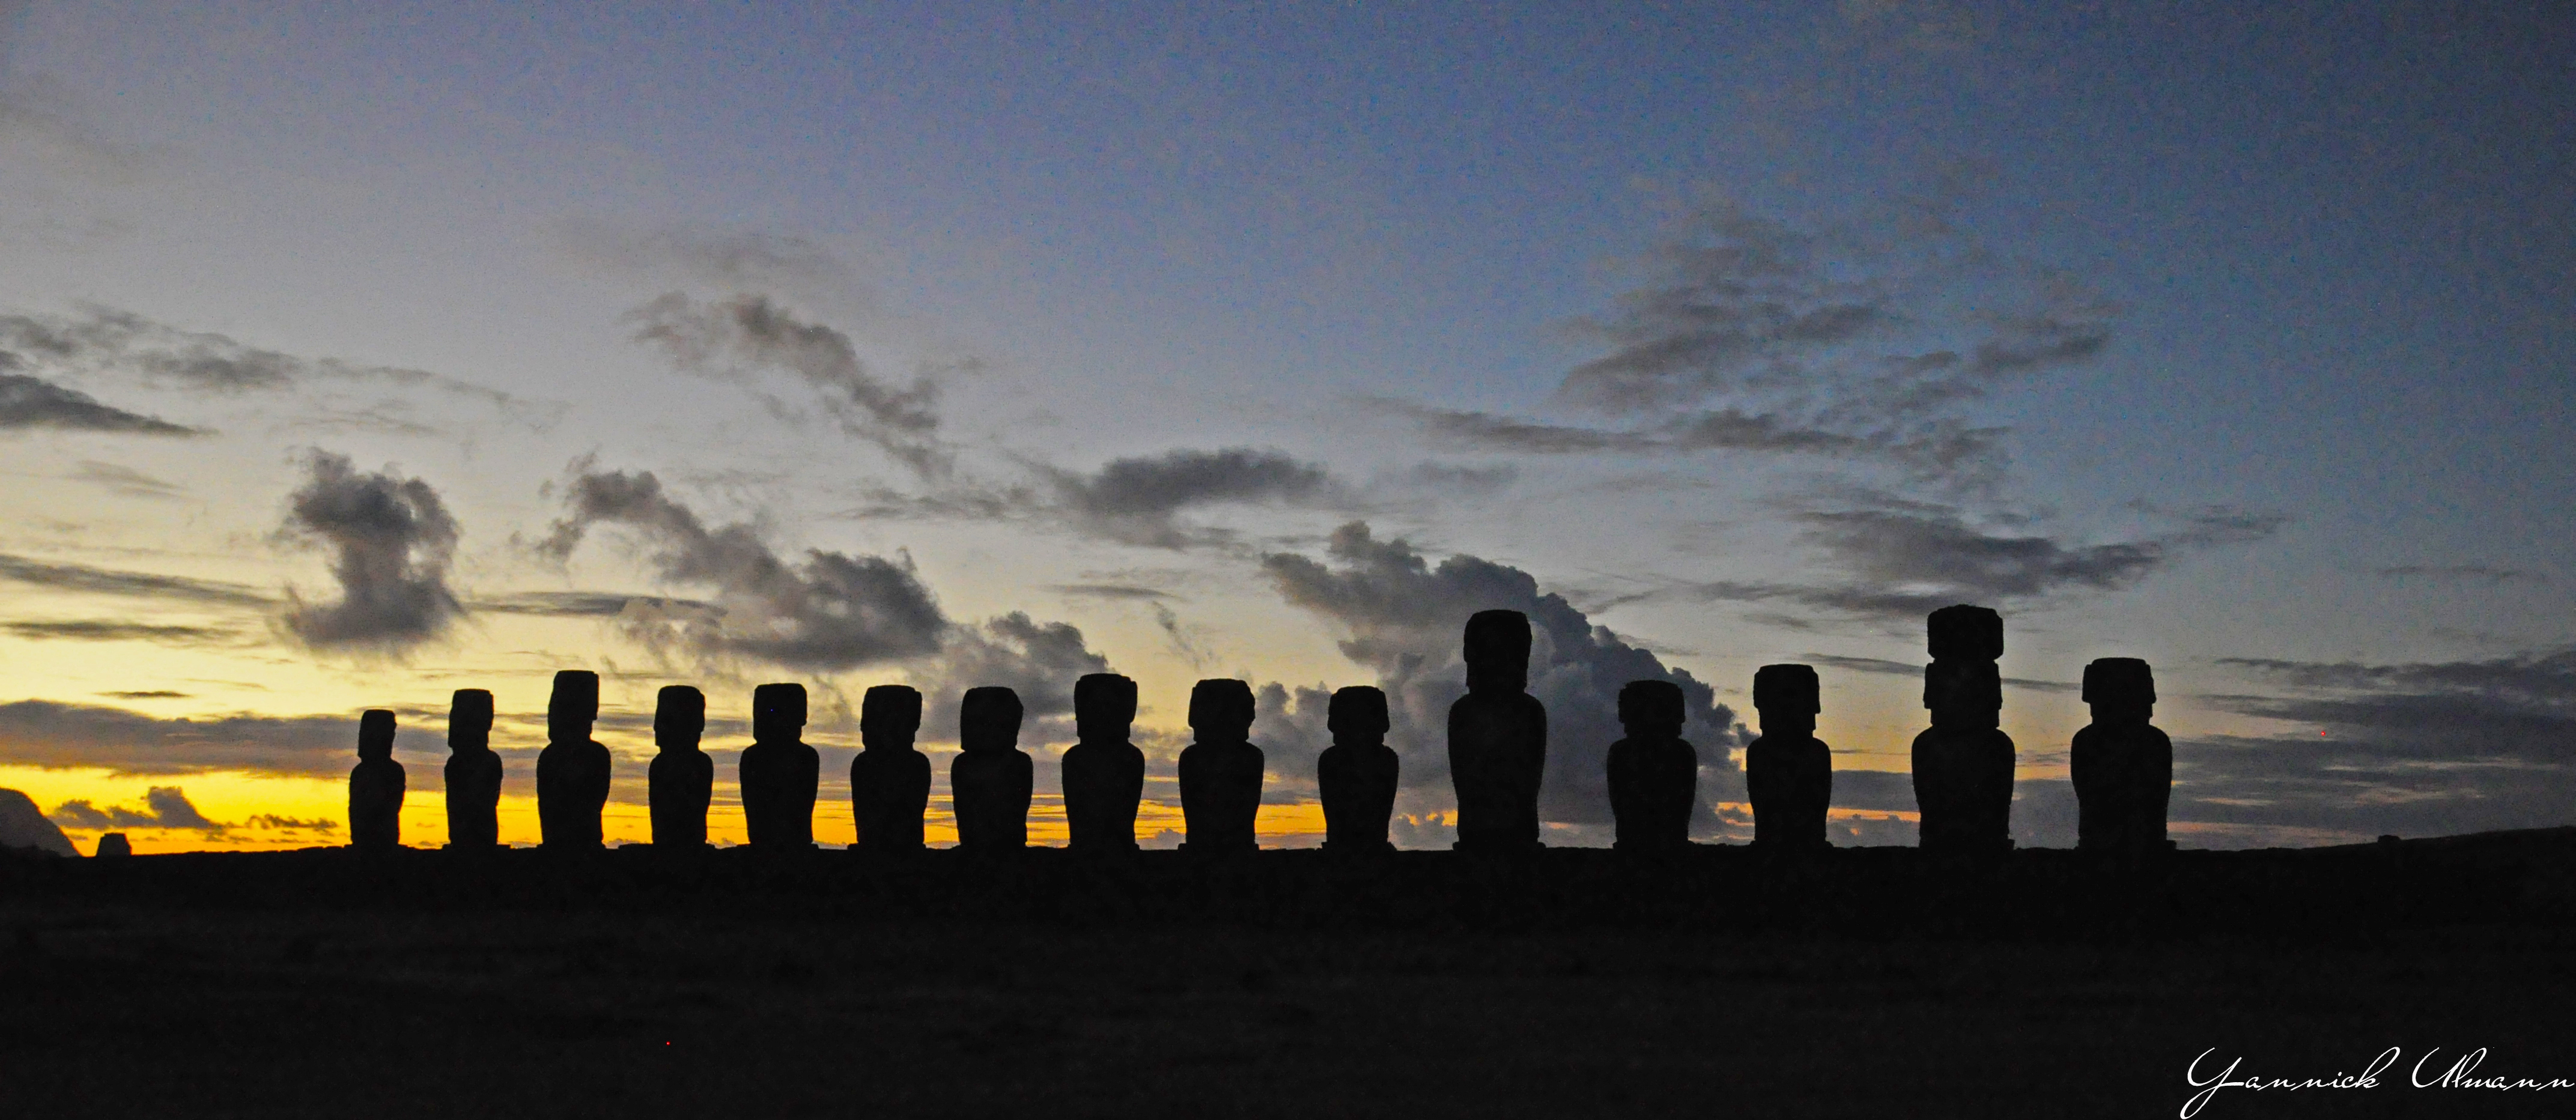 Before Sunrise over Ahu Tongariki